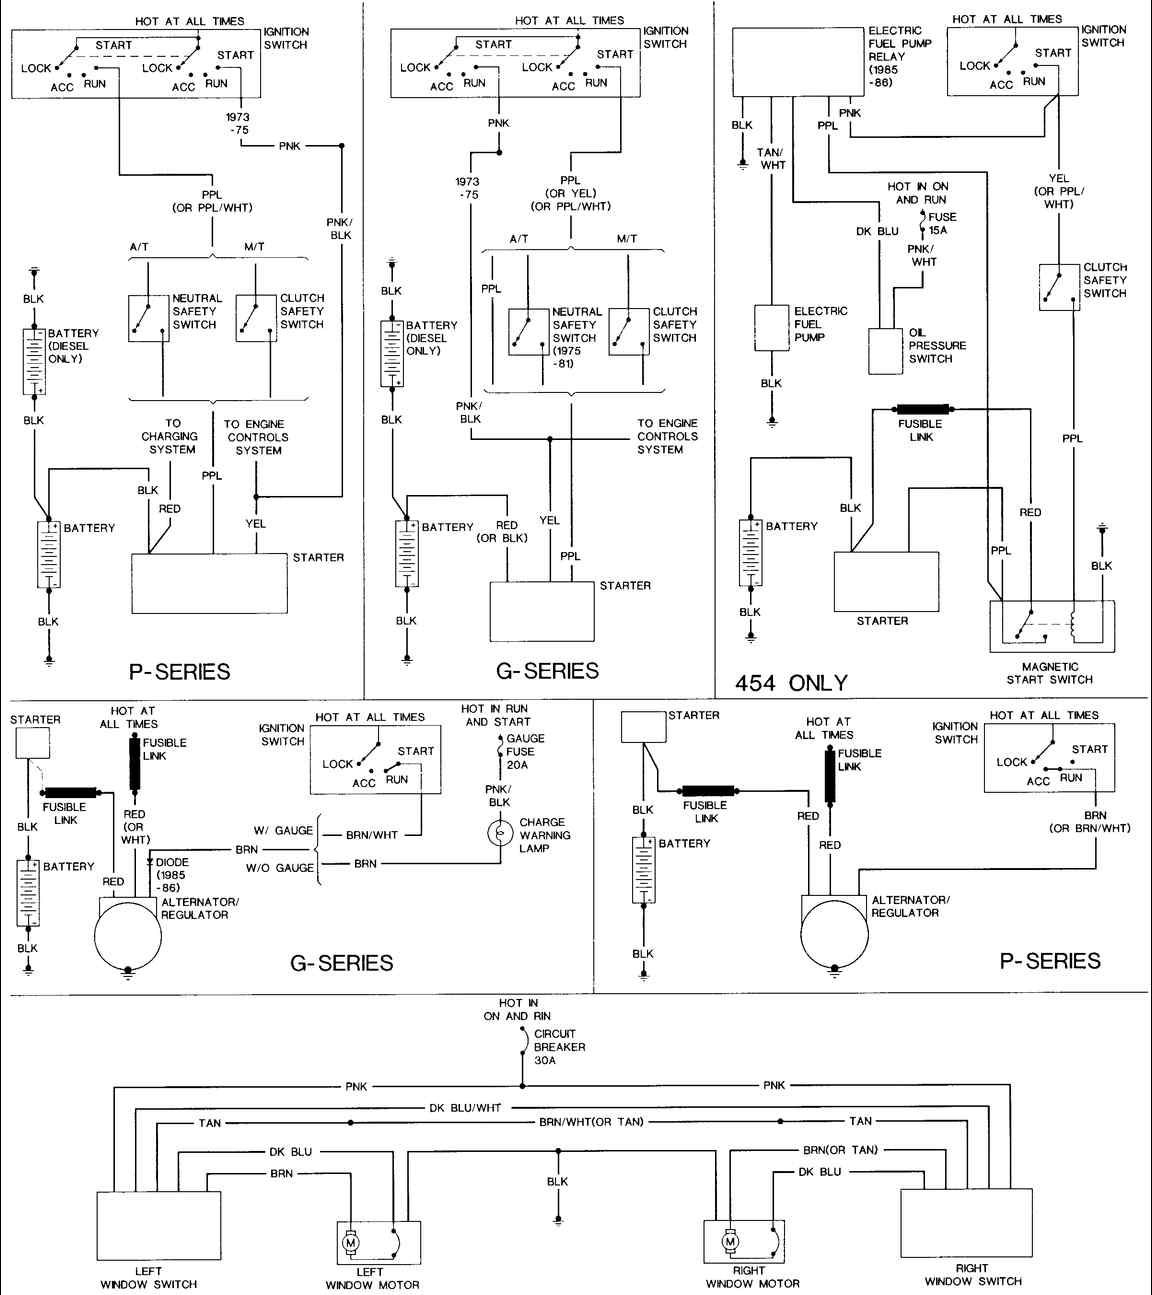 0c73623a181dc376dbb4777e2029d285 85 chevy truck wiring diagram 85 chevy van the steering column 1984 chevy truck ignition wiring diagram at soozxer.org